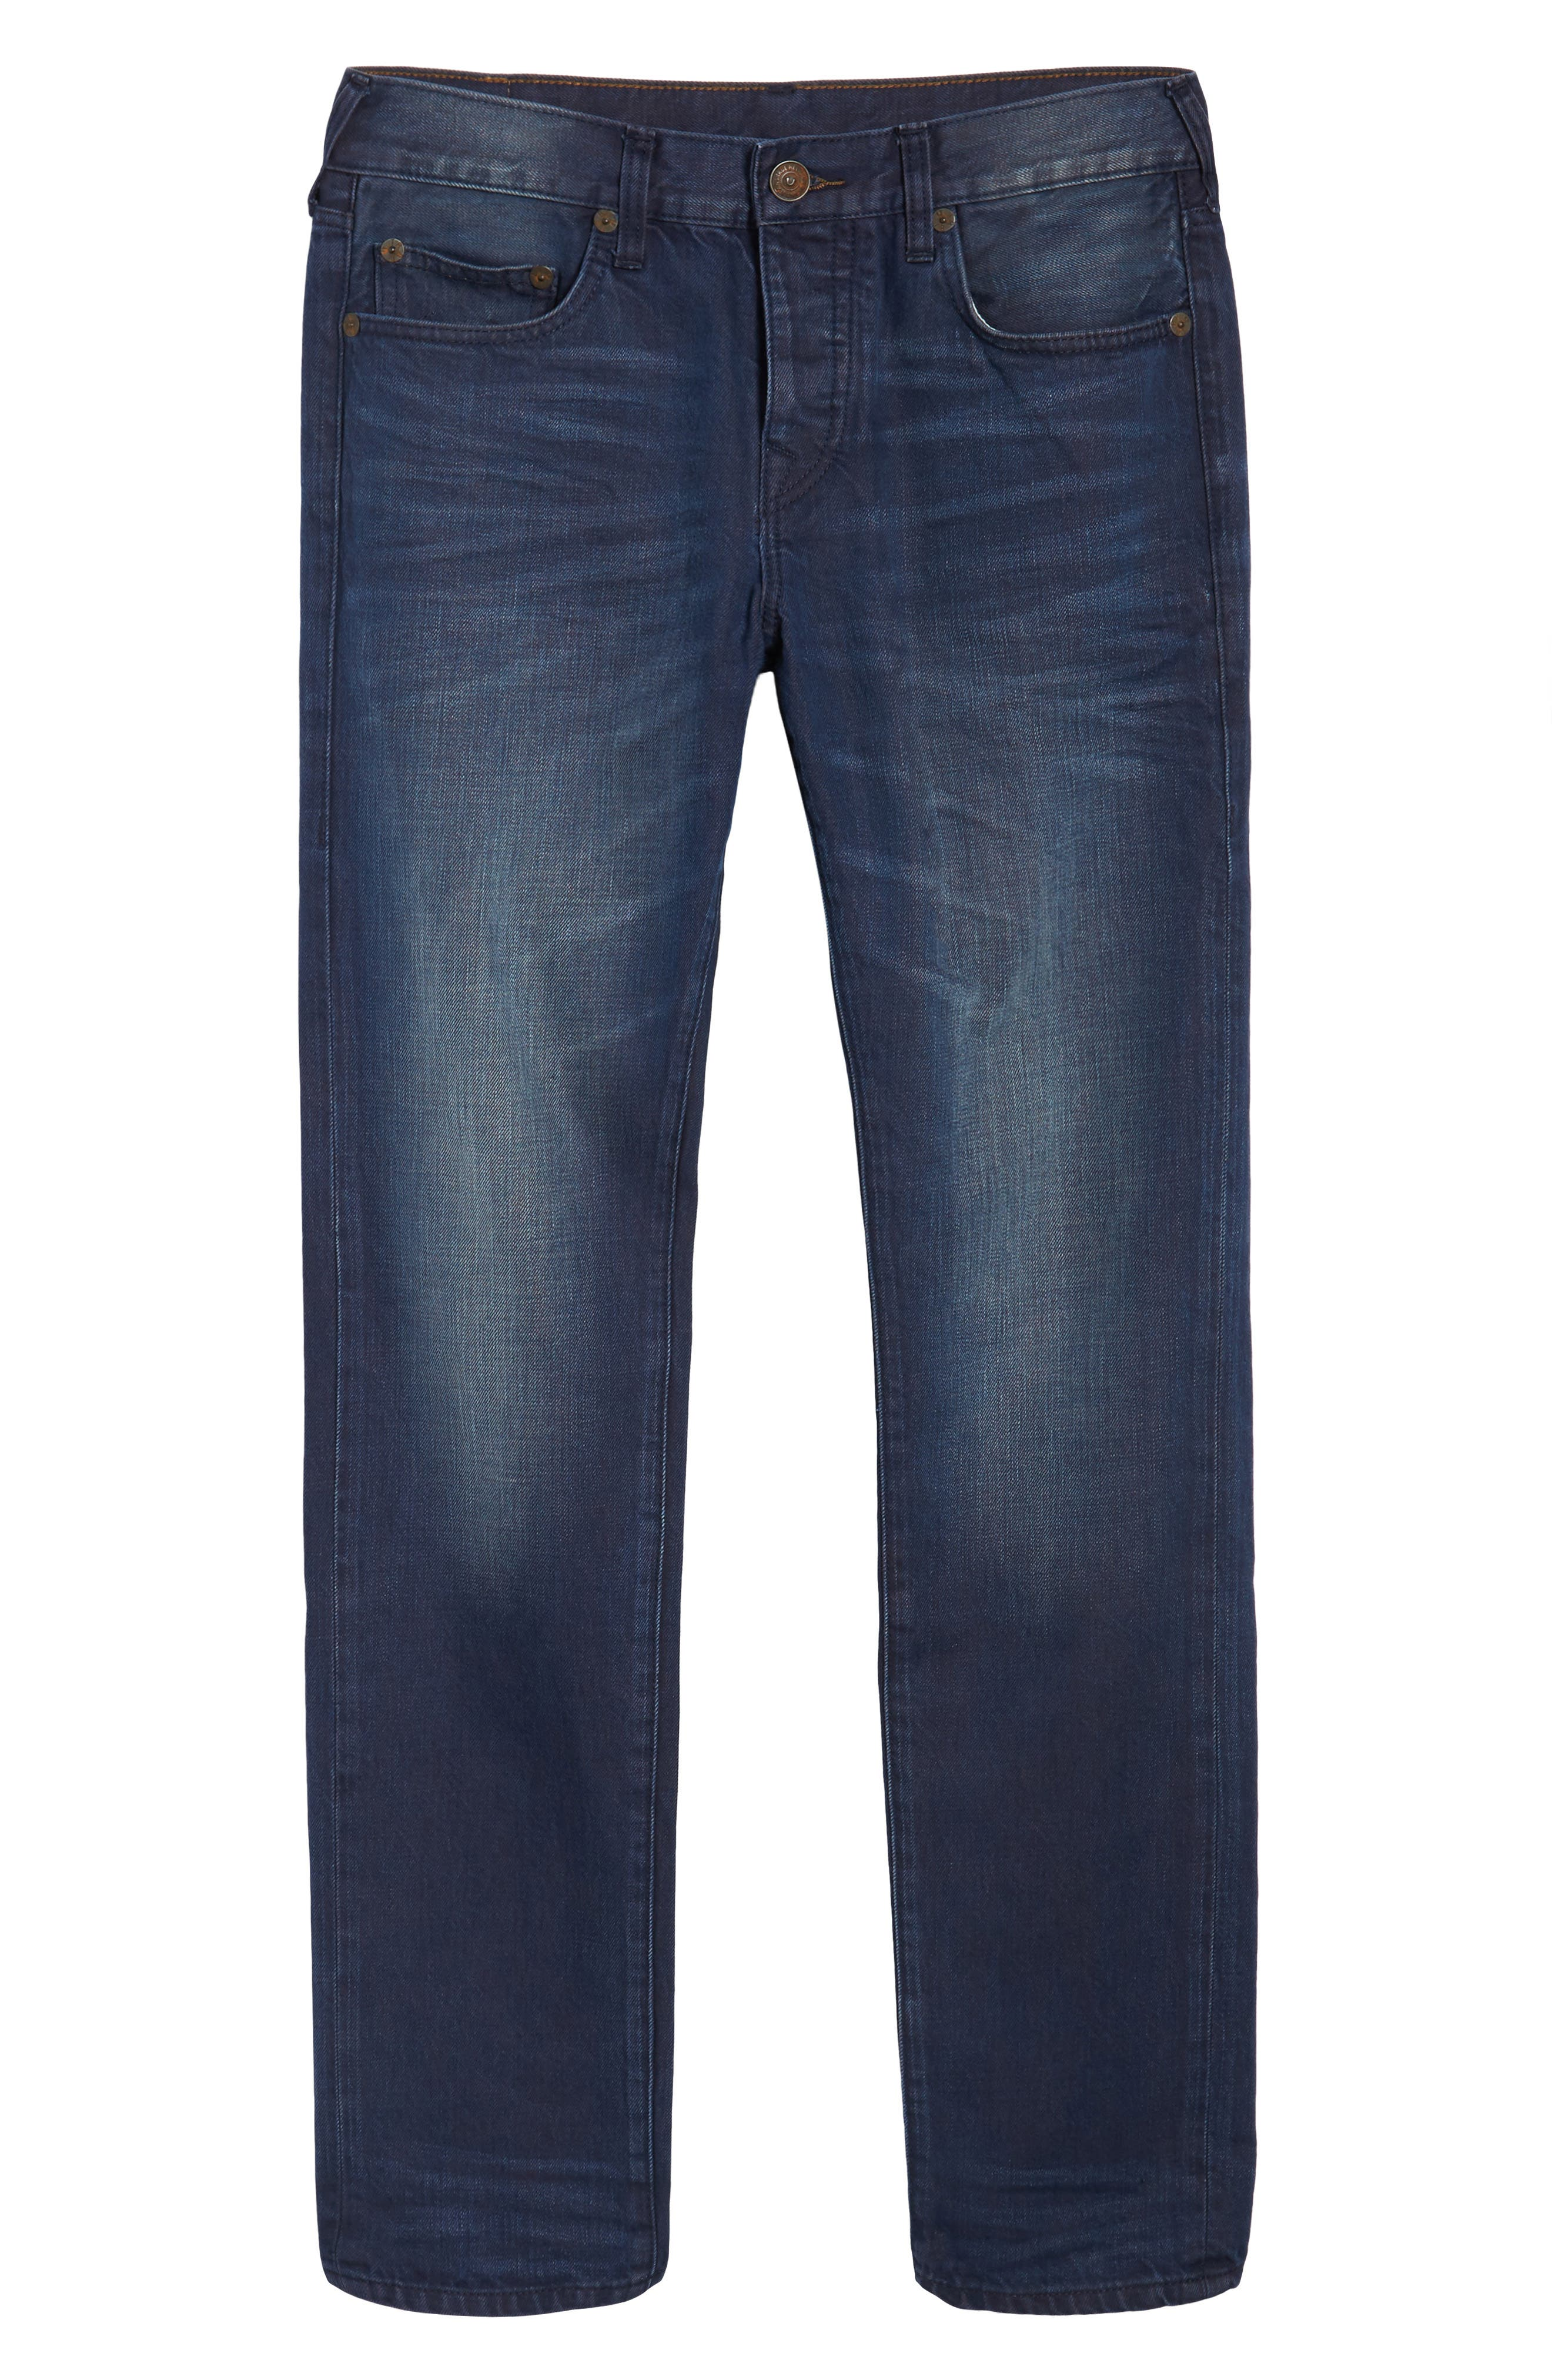 Rocco Skinny Fit Jeans,                             Alternate thumbnail 6, color,